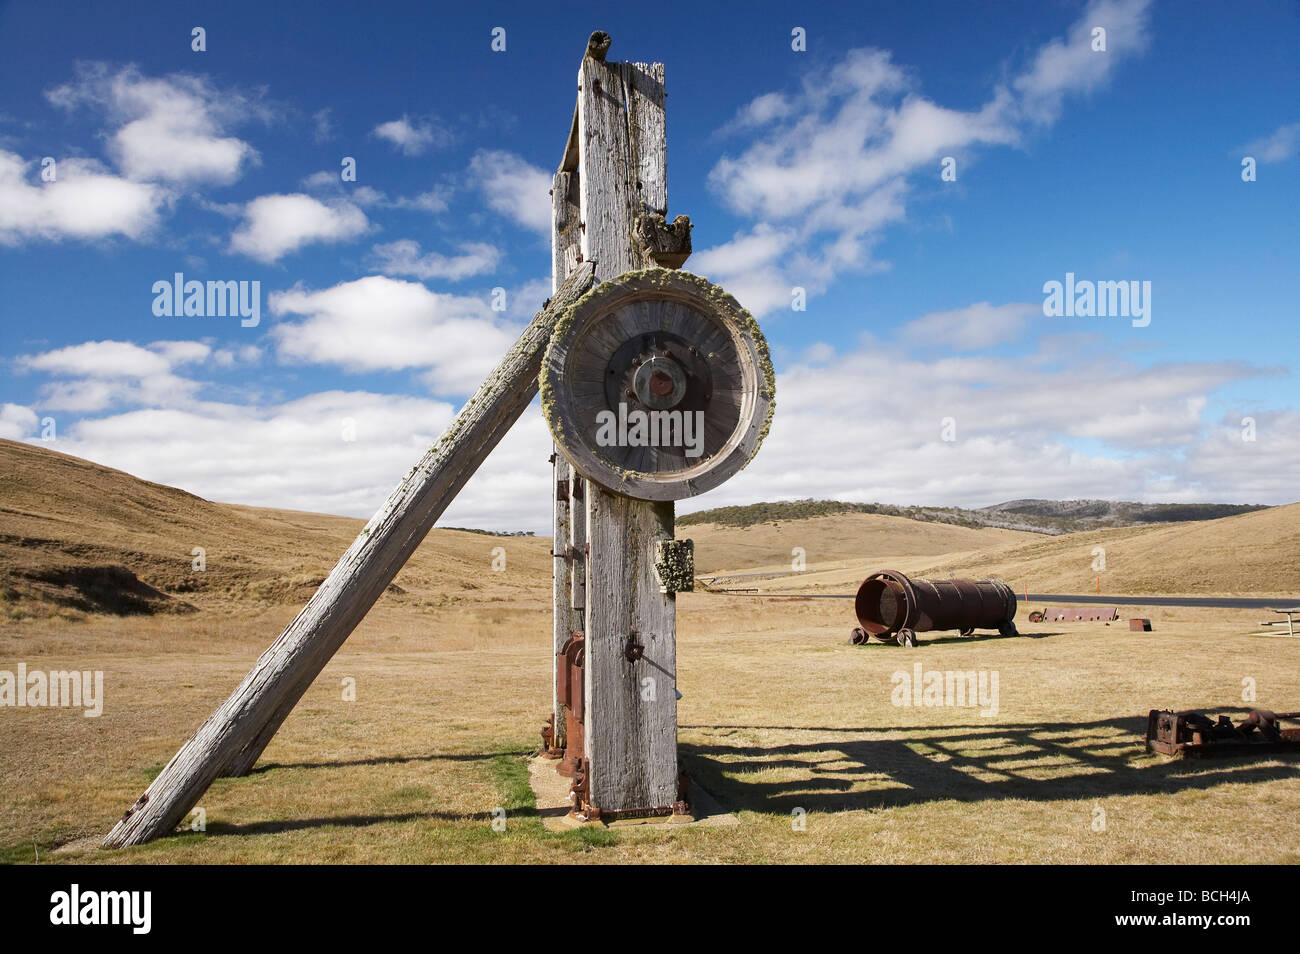 Old Gold Stamping Battery Historic Abandoned Gold Rush Town of Kiandra Kosciuszko National Park Snowy Mountains - Stock Image